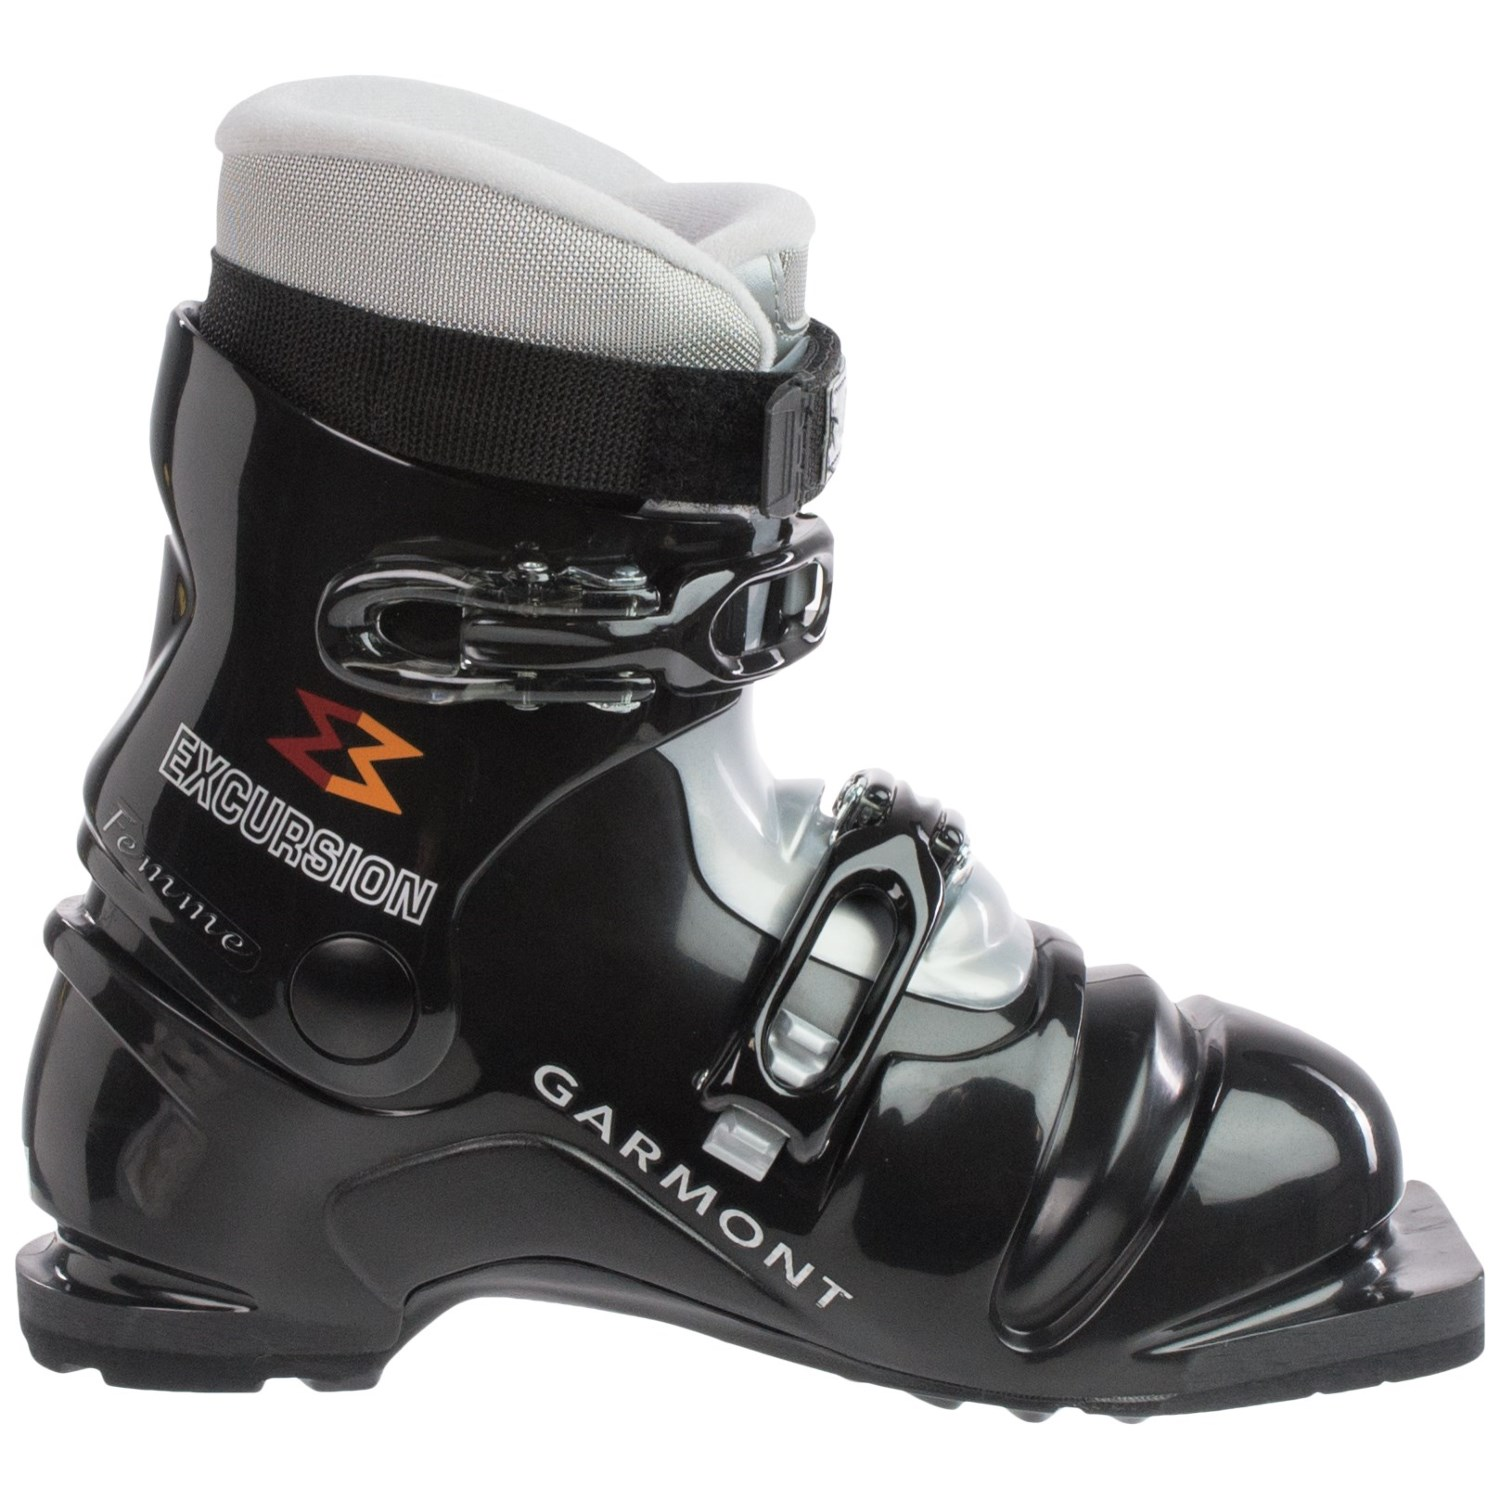 garmont excursion telemark ski boots for save 55